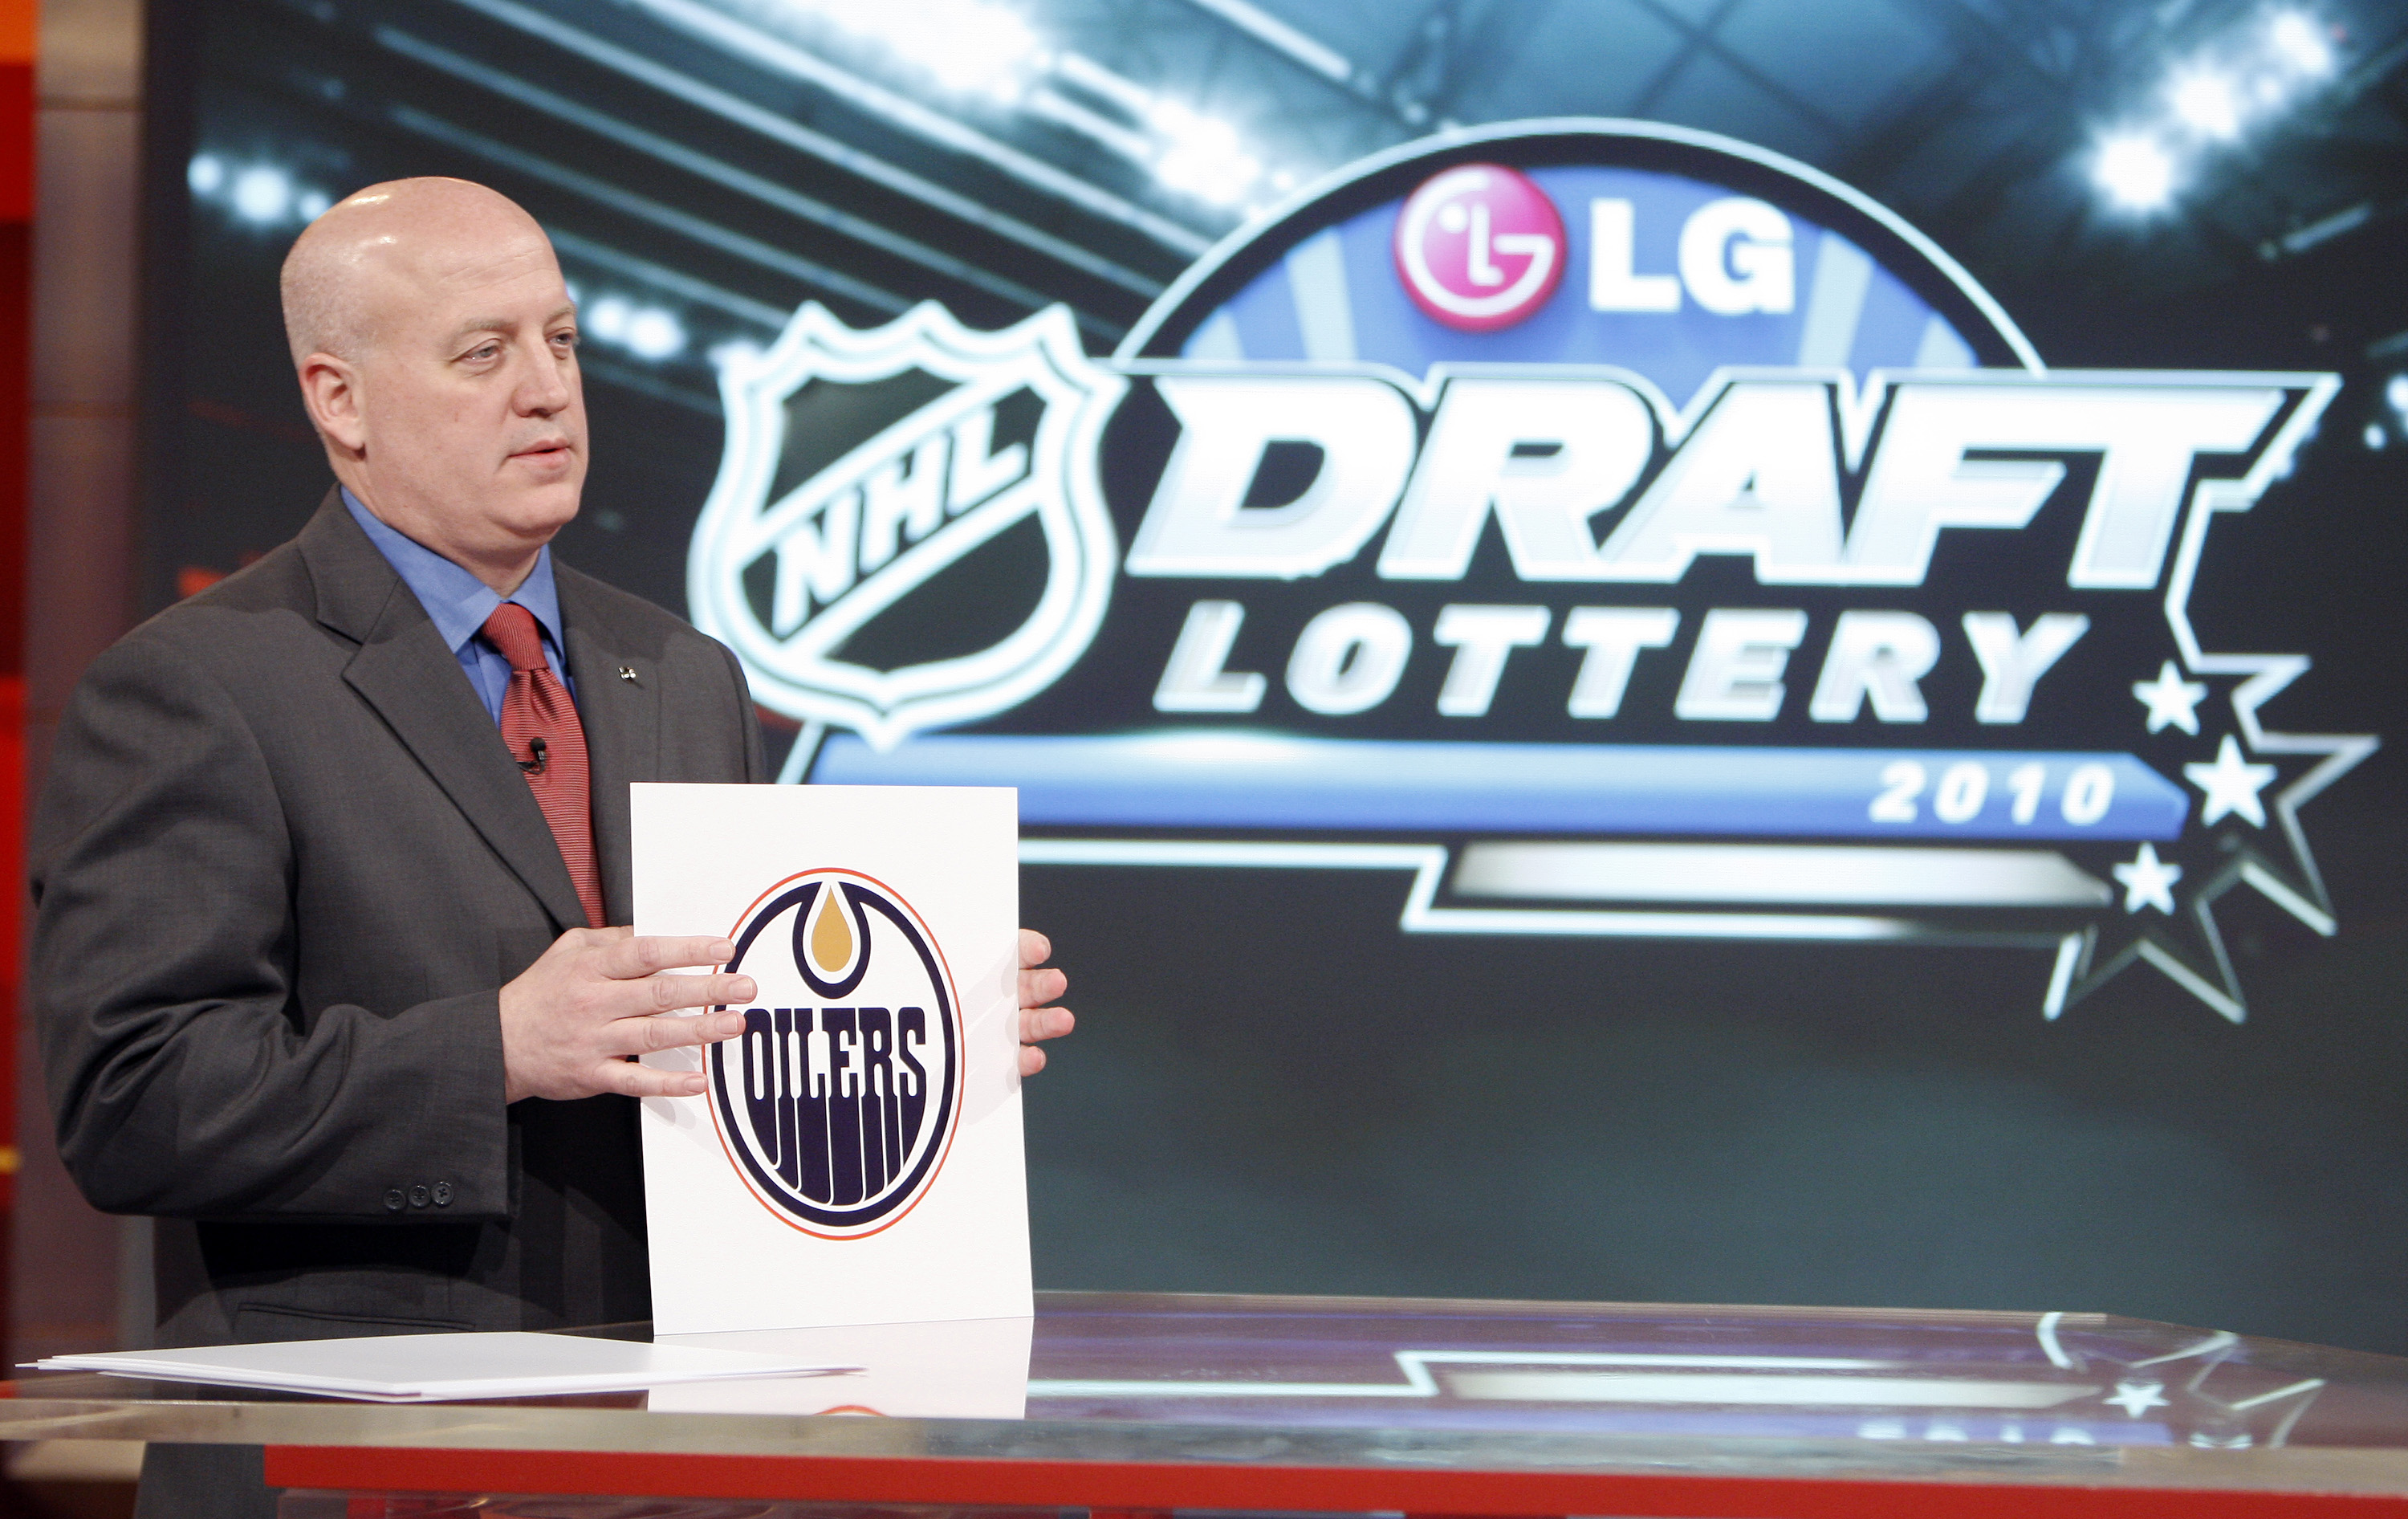 2016 NHL draft lottery: Odds, time, TV schedule and how to watch online